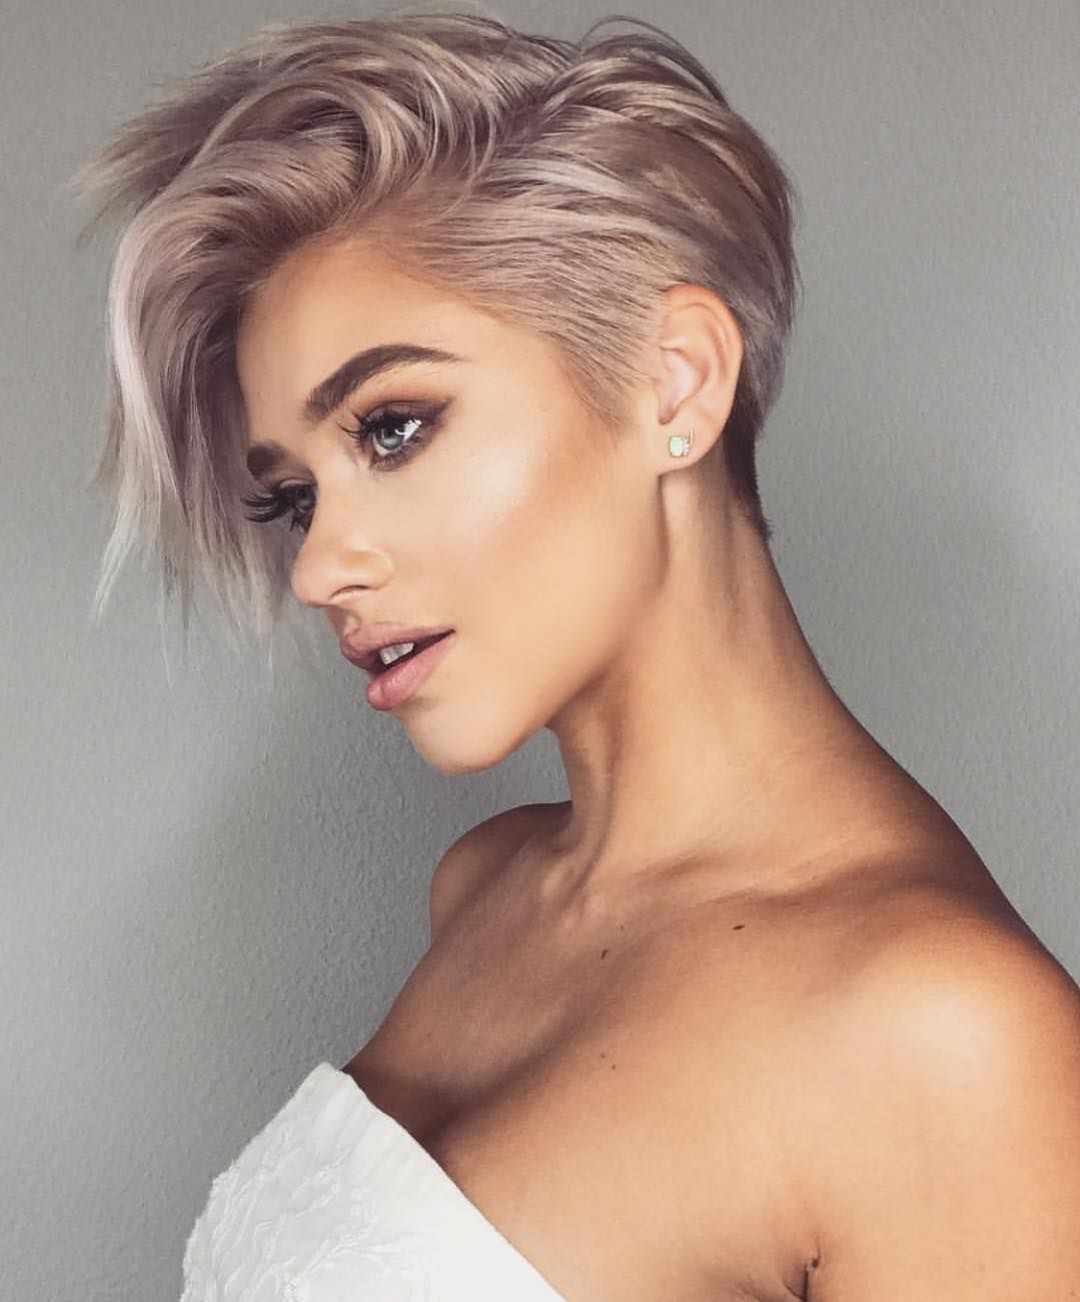 10 Trendy Very Short Haircuts For Female Cool Short Hair Styles 2020 Very Short Haircuts Hair Styles Very Short Hair